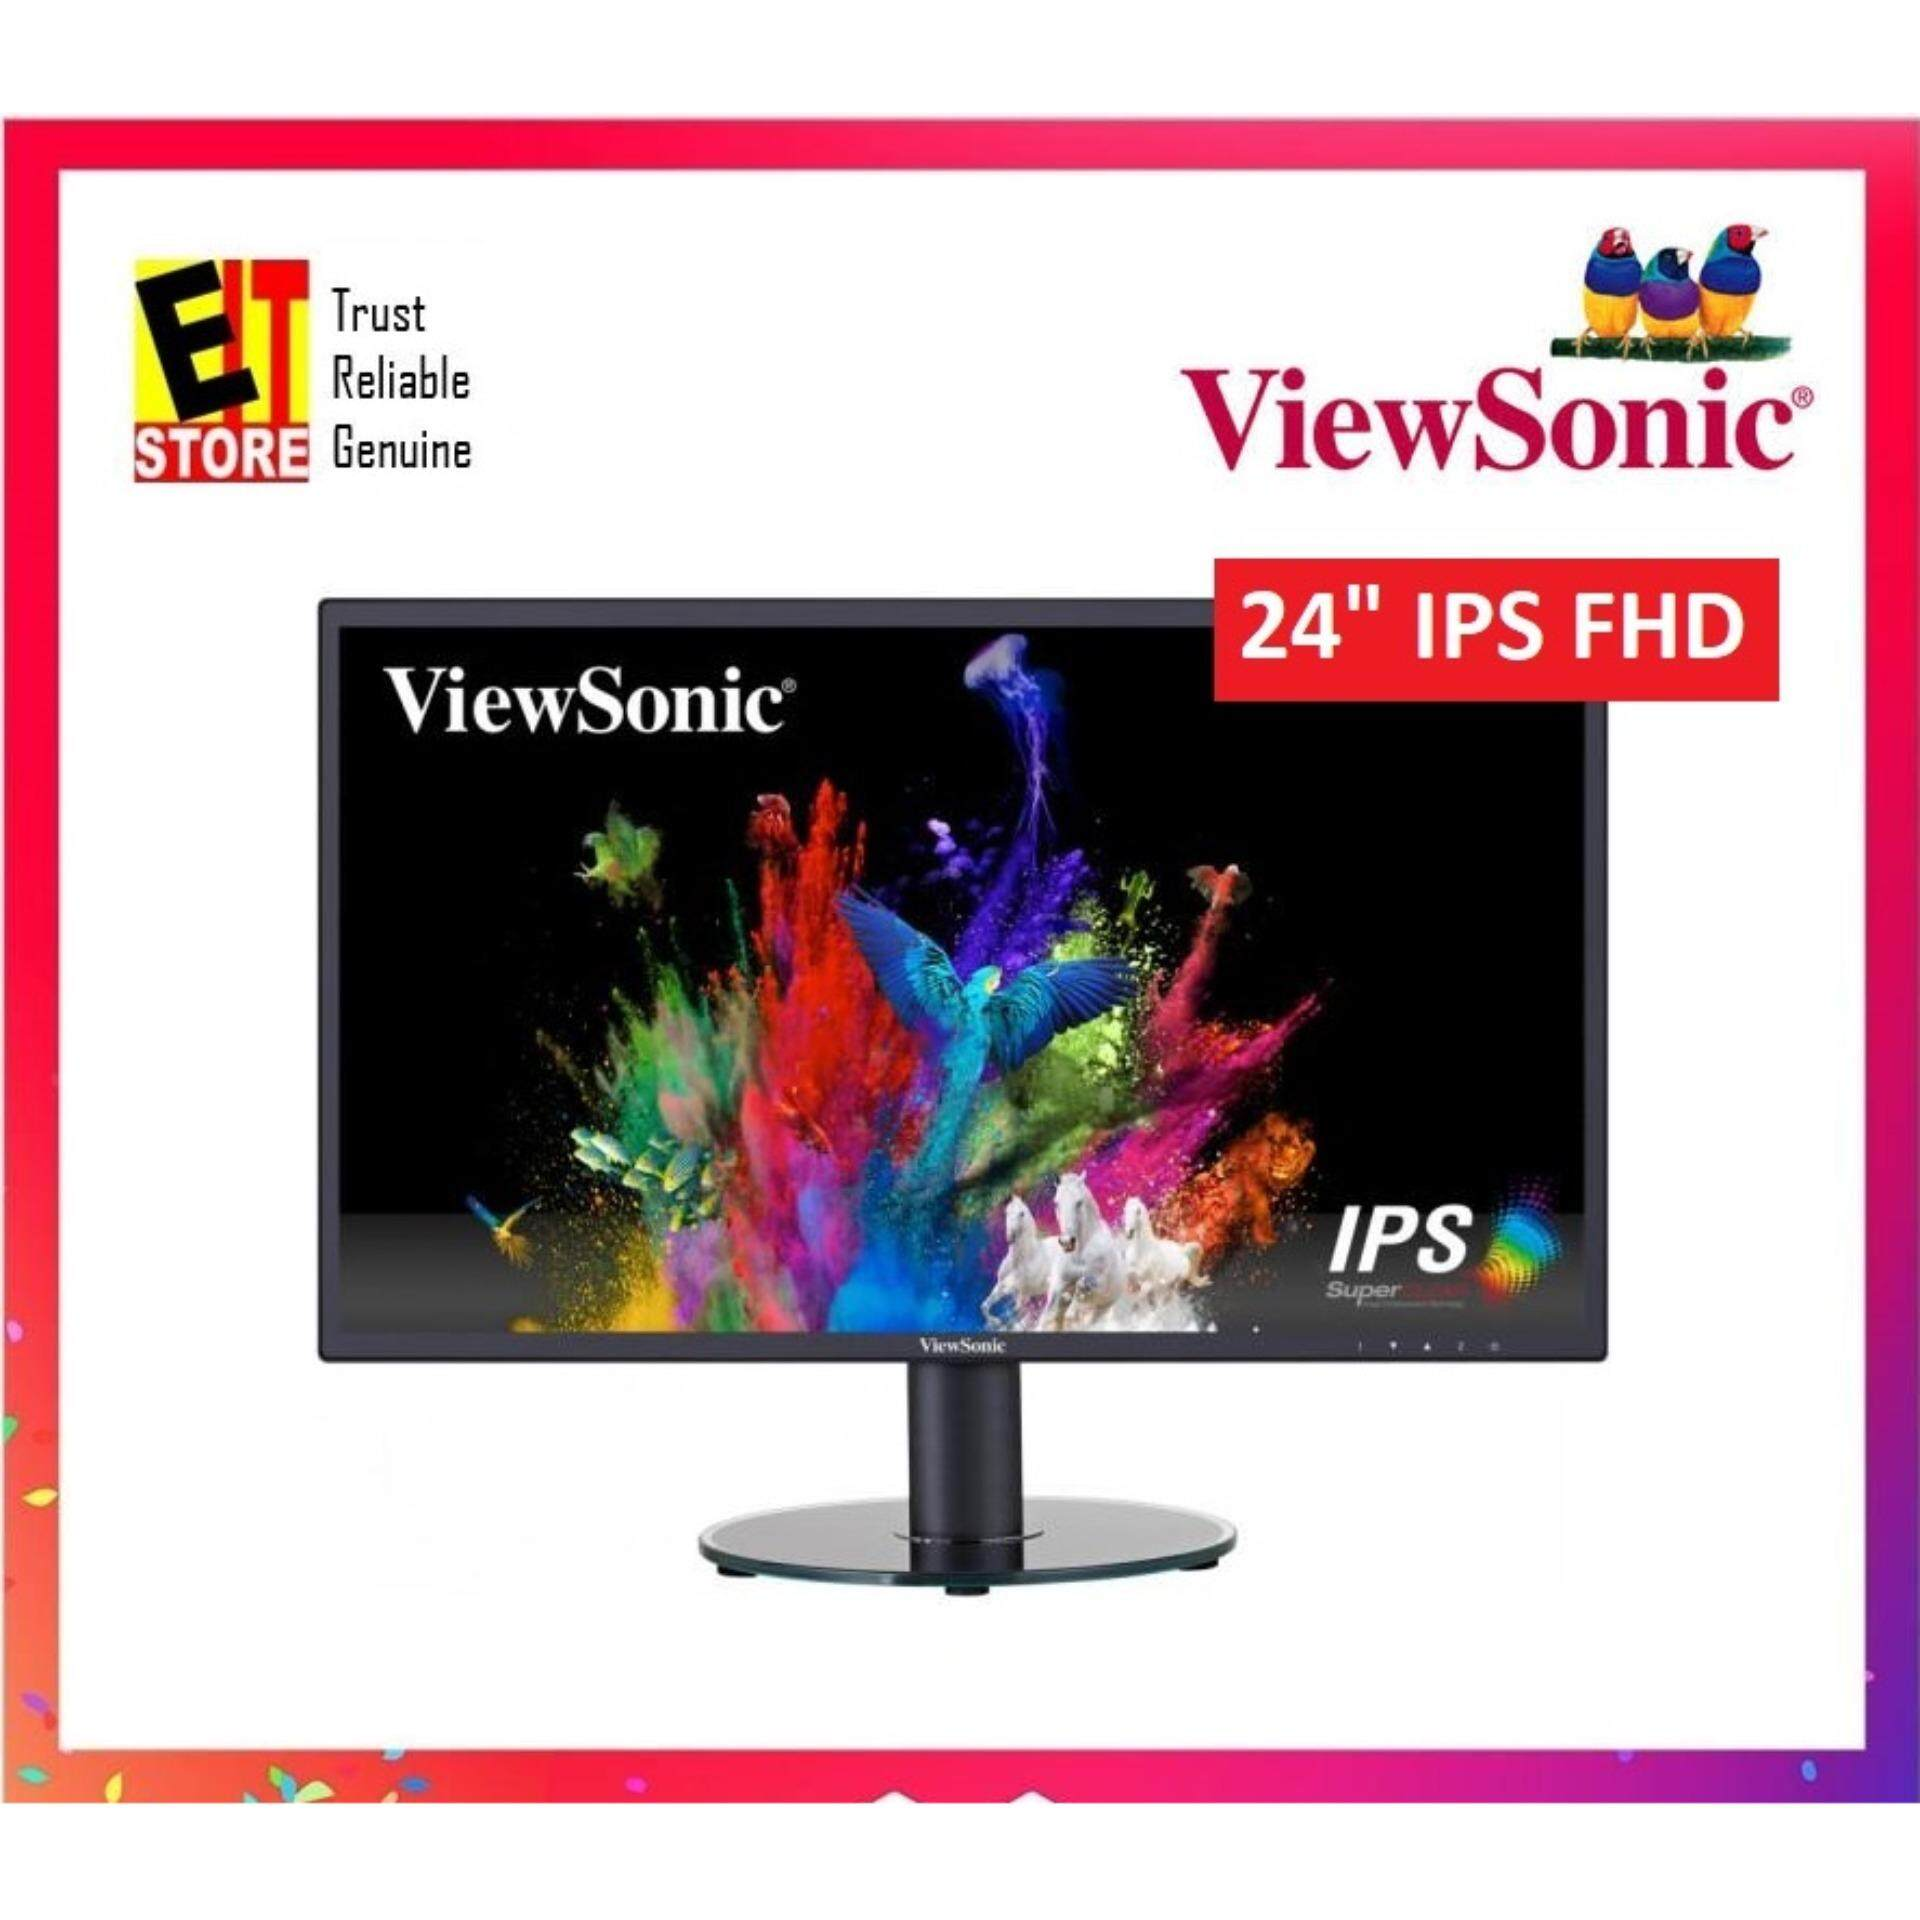 VIEWSONIC VA2419-SH 24 FULL HD SuperClear® IPS LED MONITOR Malaysia